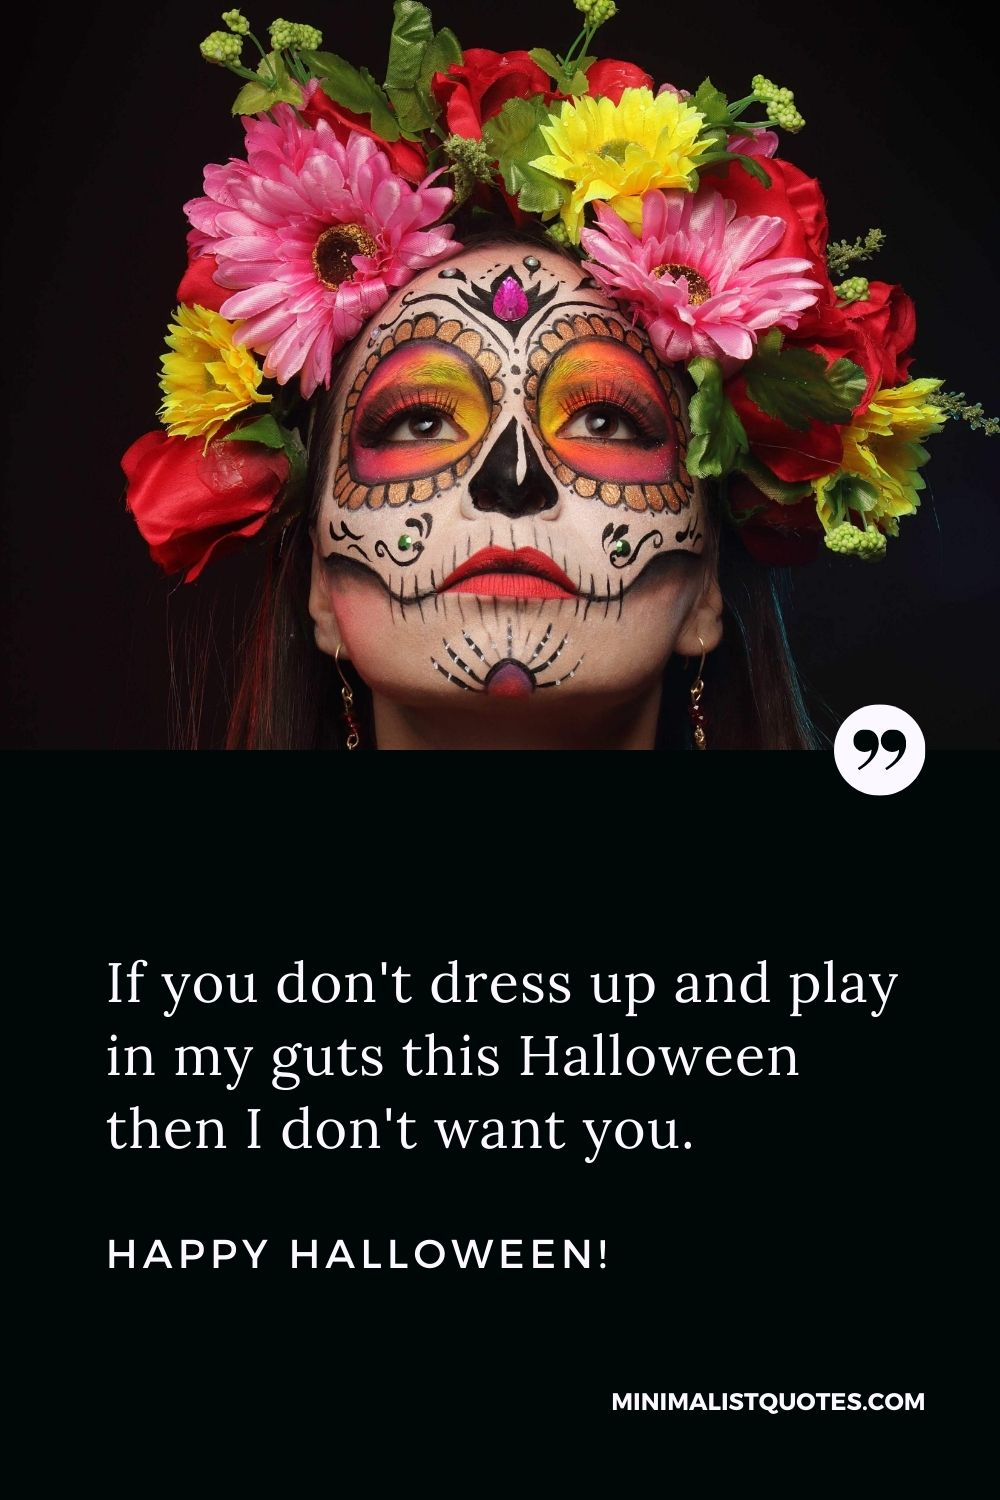 Happy Halloween Wishes - If you don't dress up and play in my guts this Halloween then I don't want you.